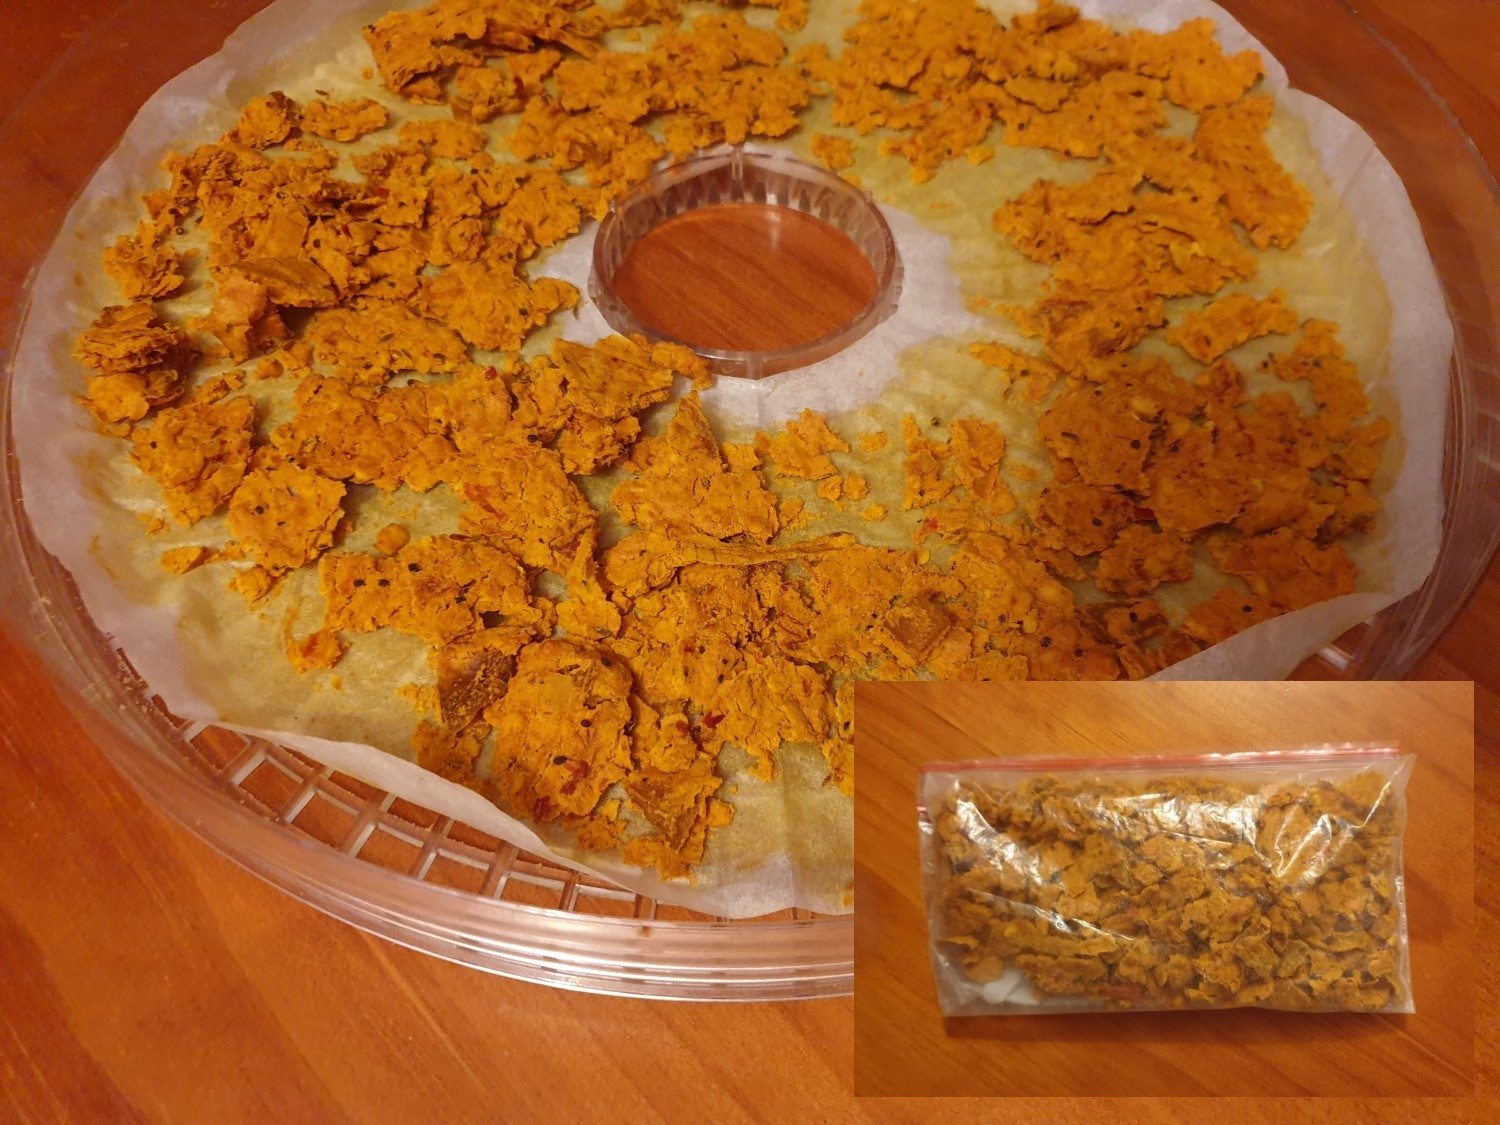 This is what the dahl looks like once dry (main photo) and stored (inset photo).